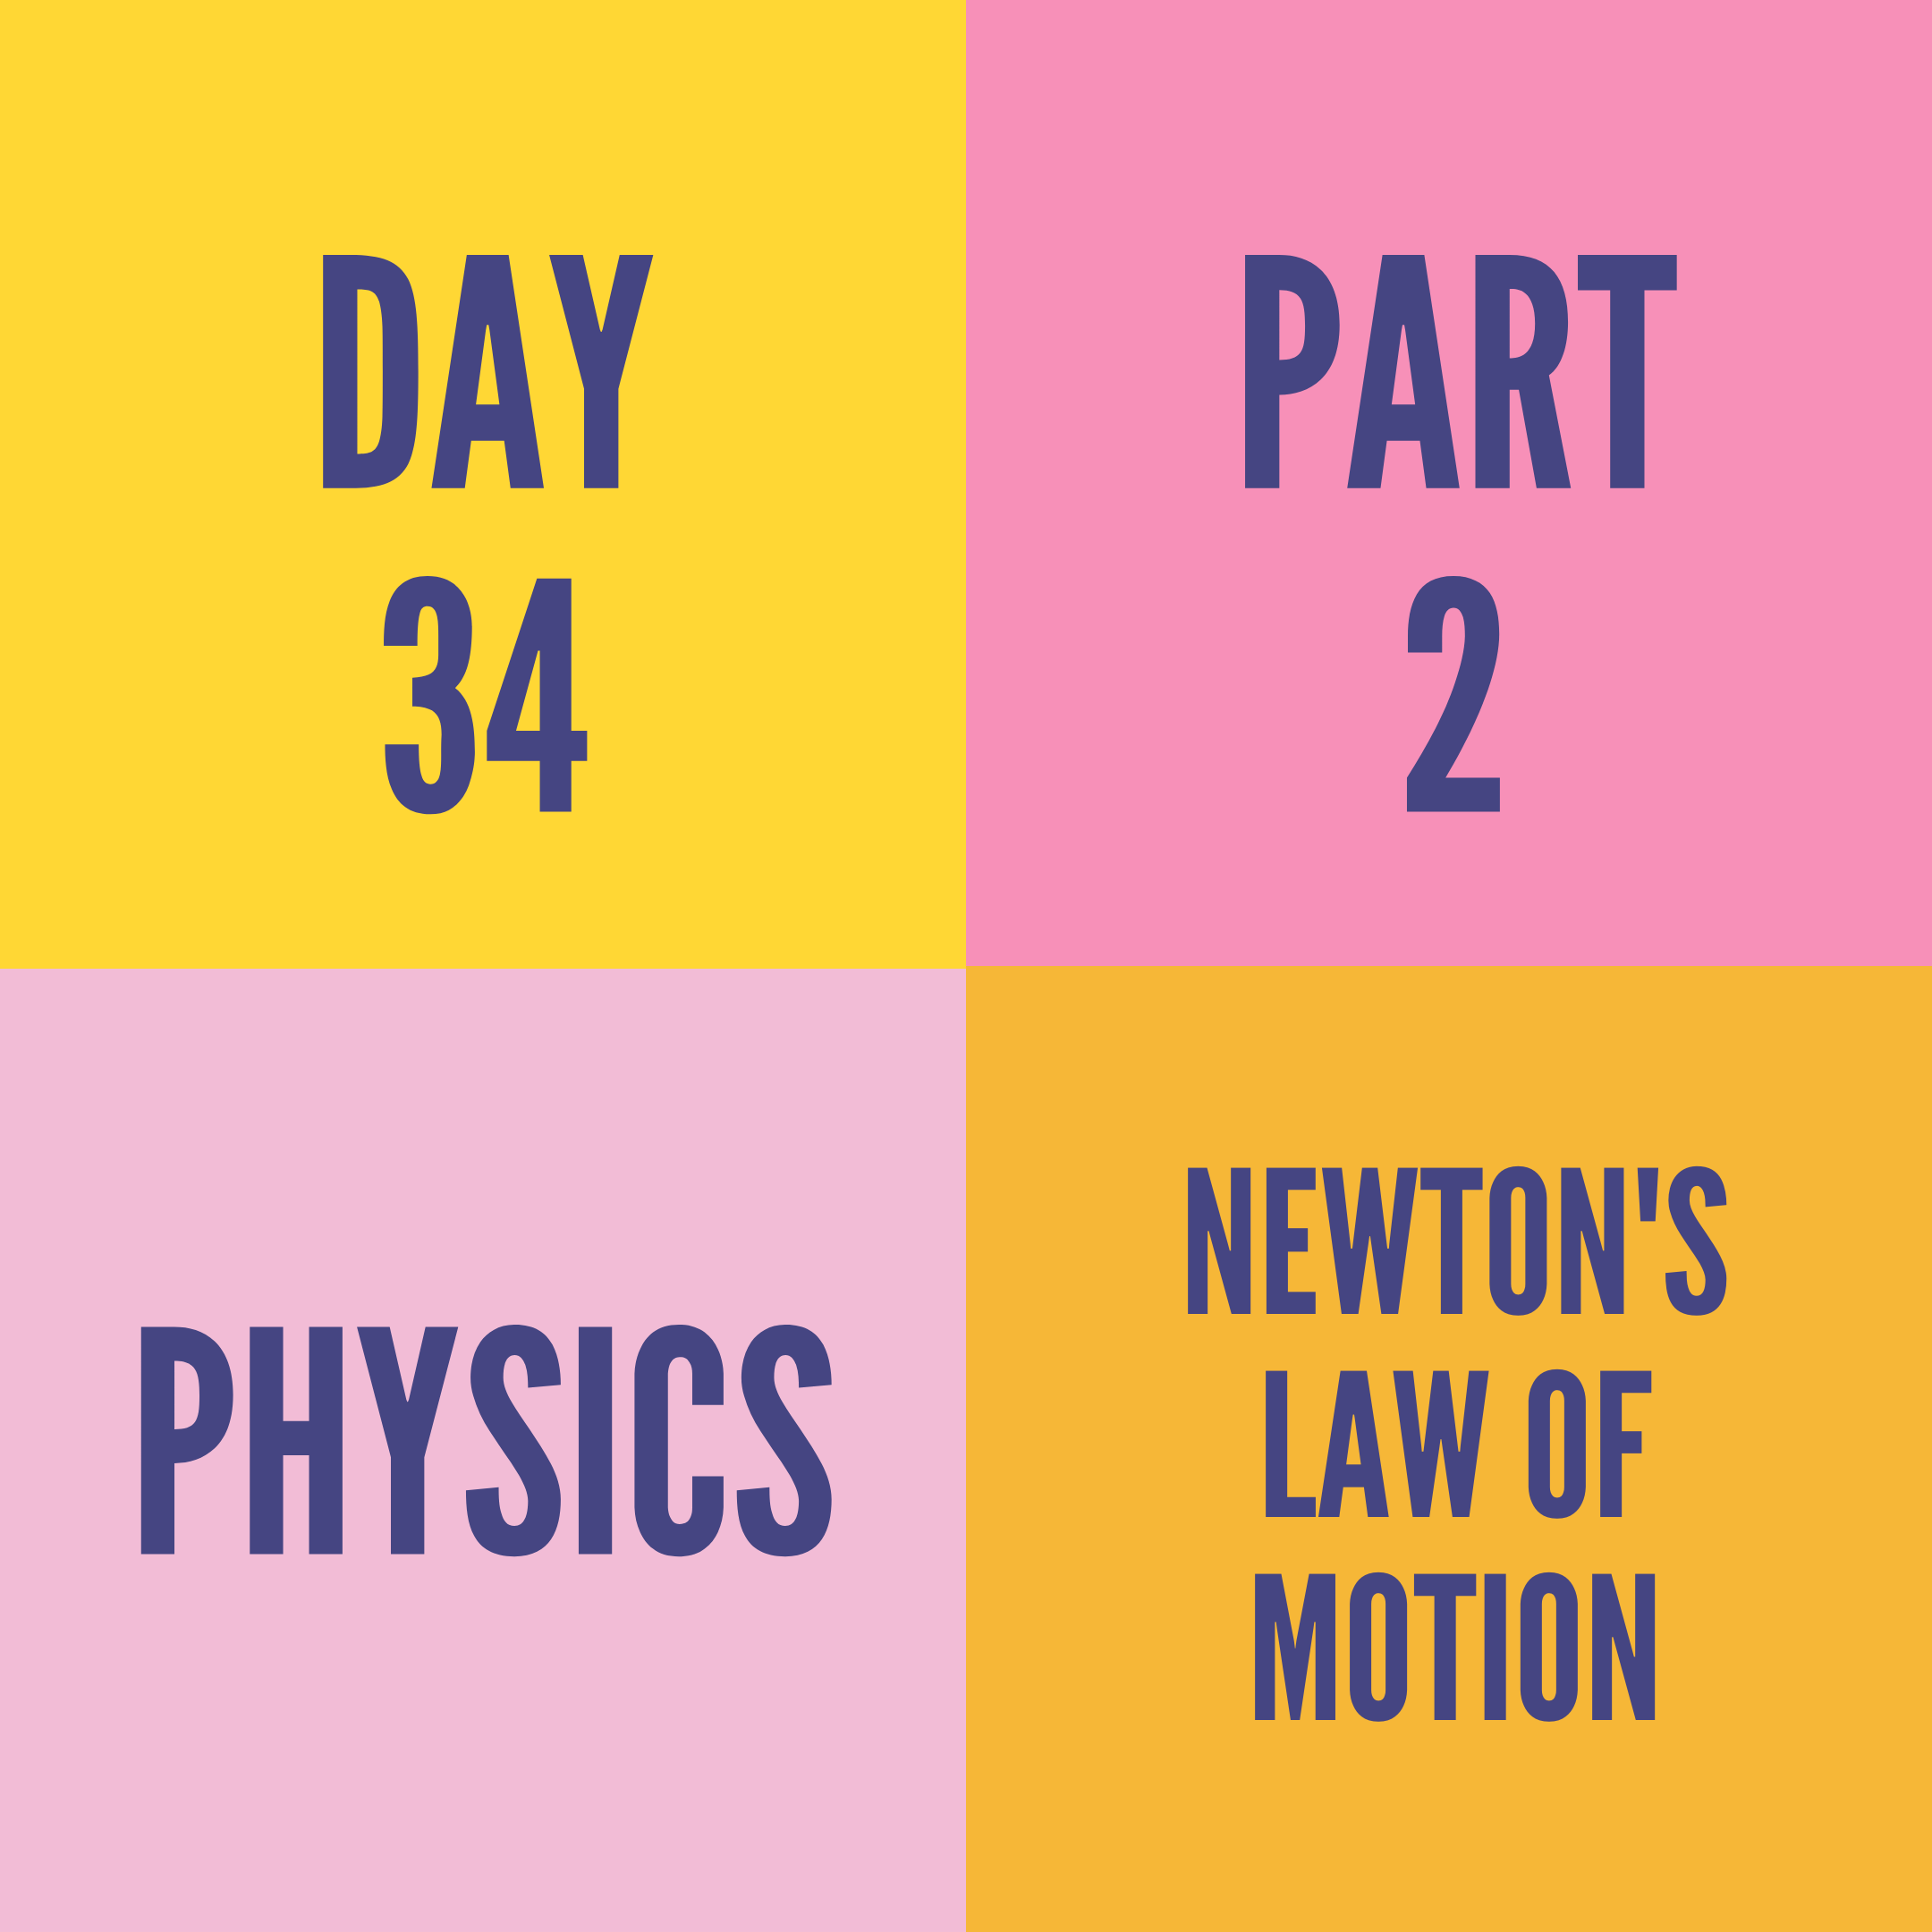 DAY-34 PART-2 NEWTON'S LAW OF MOTION